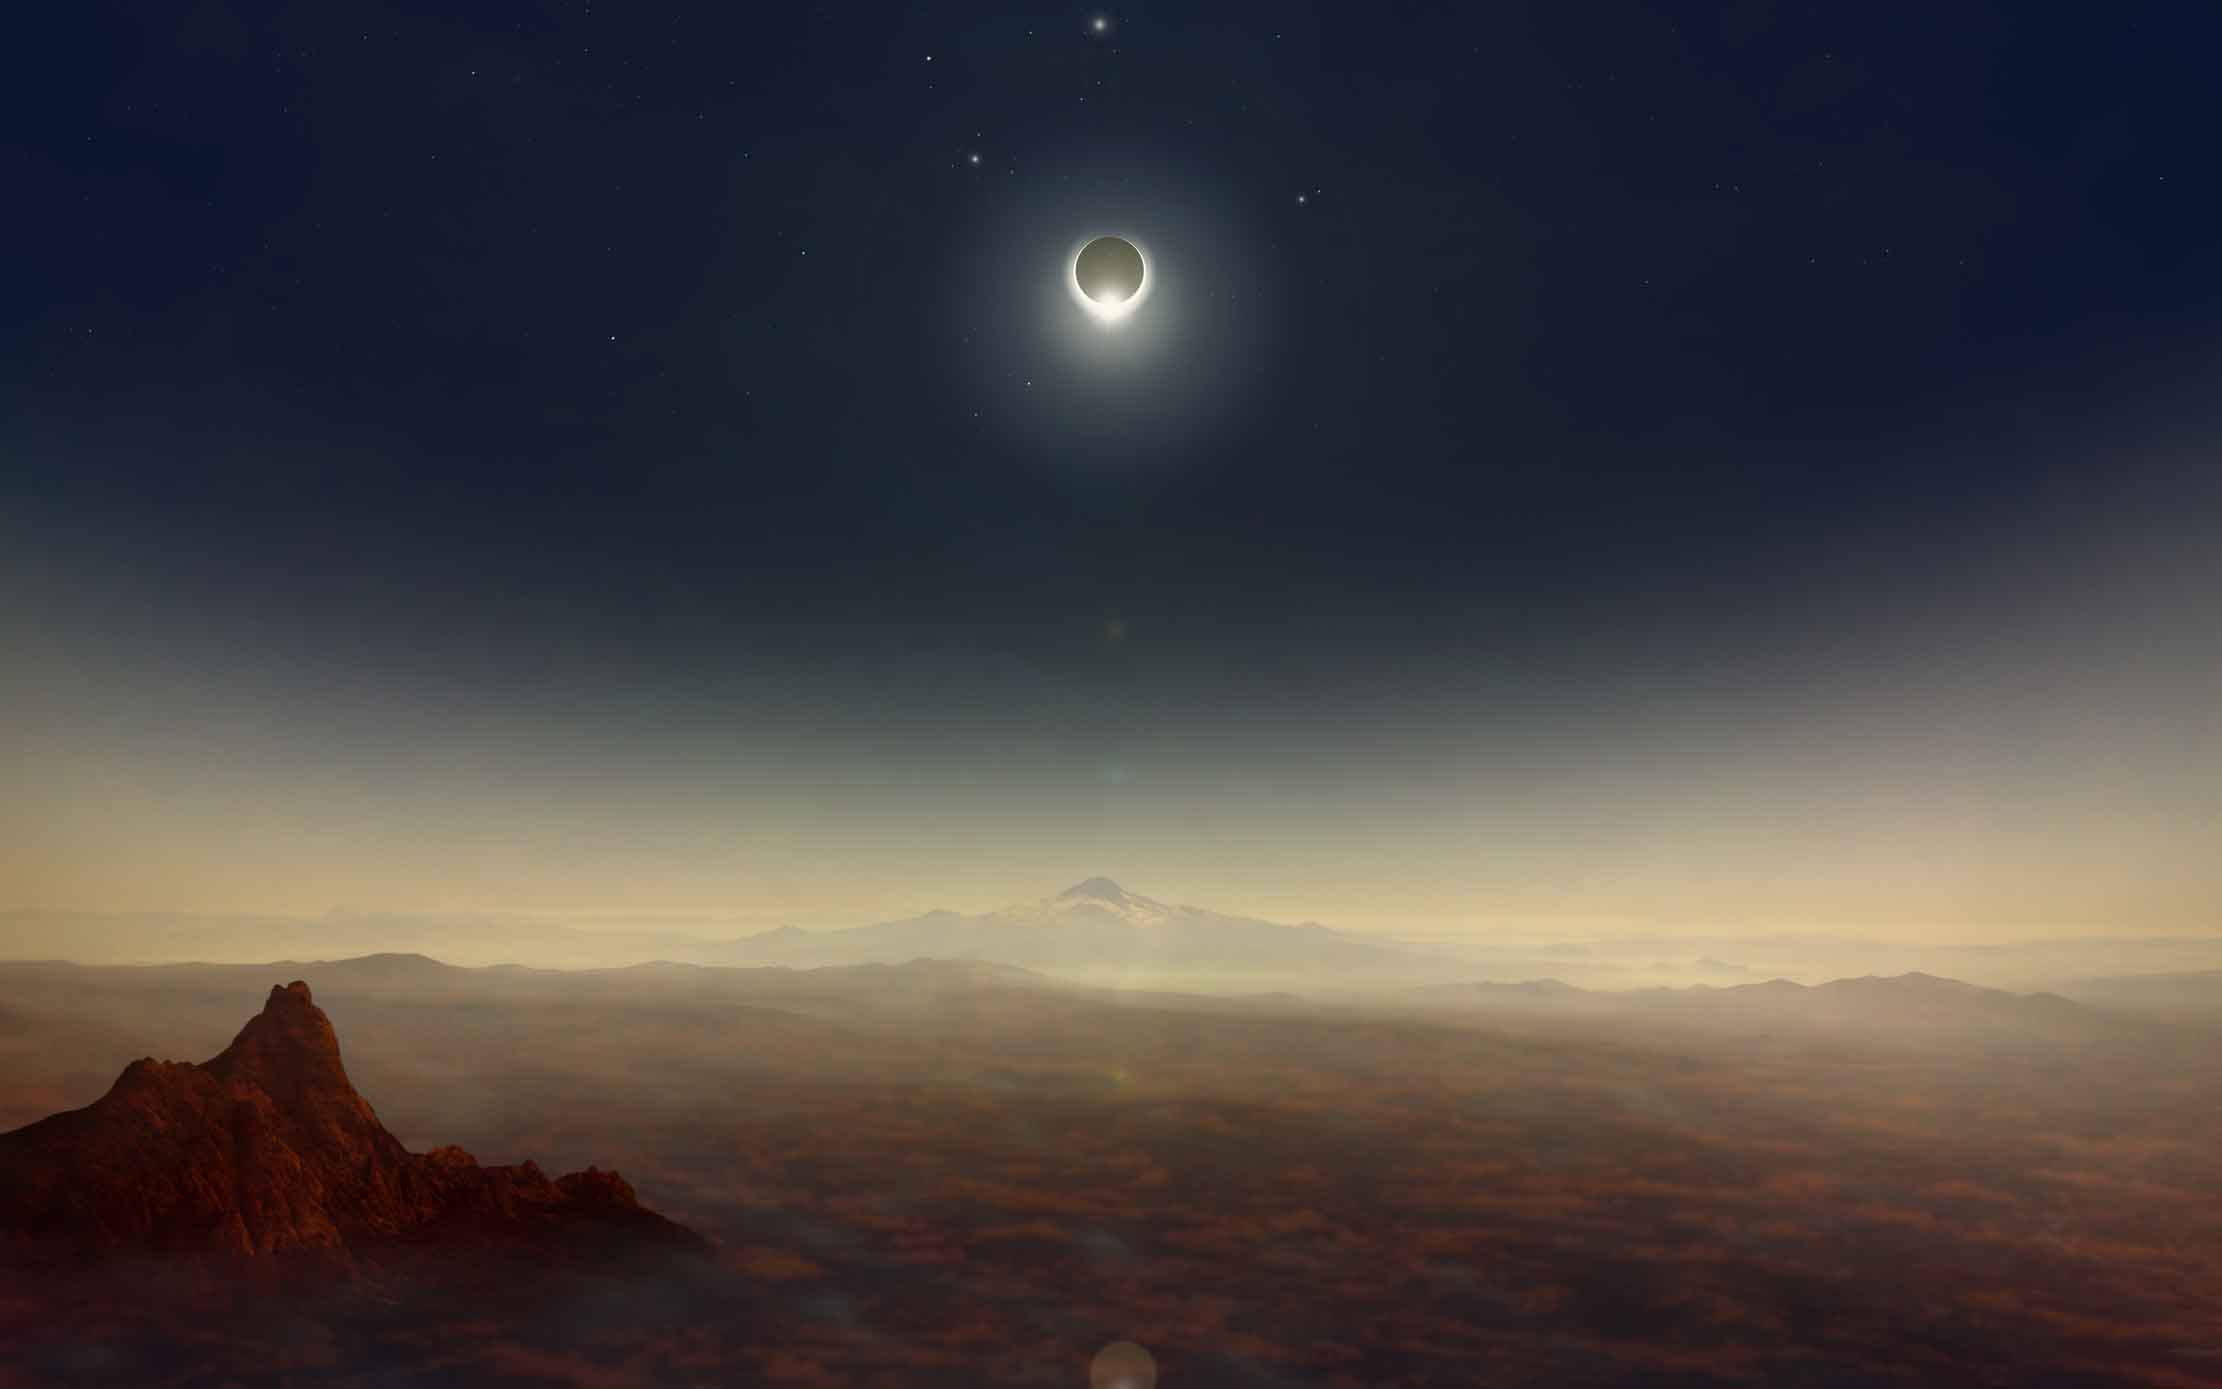 Eclipse-chasers and stargazers have descended on the United States from across the globe to experience the country's first total solar eclipse in the 26 years.